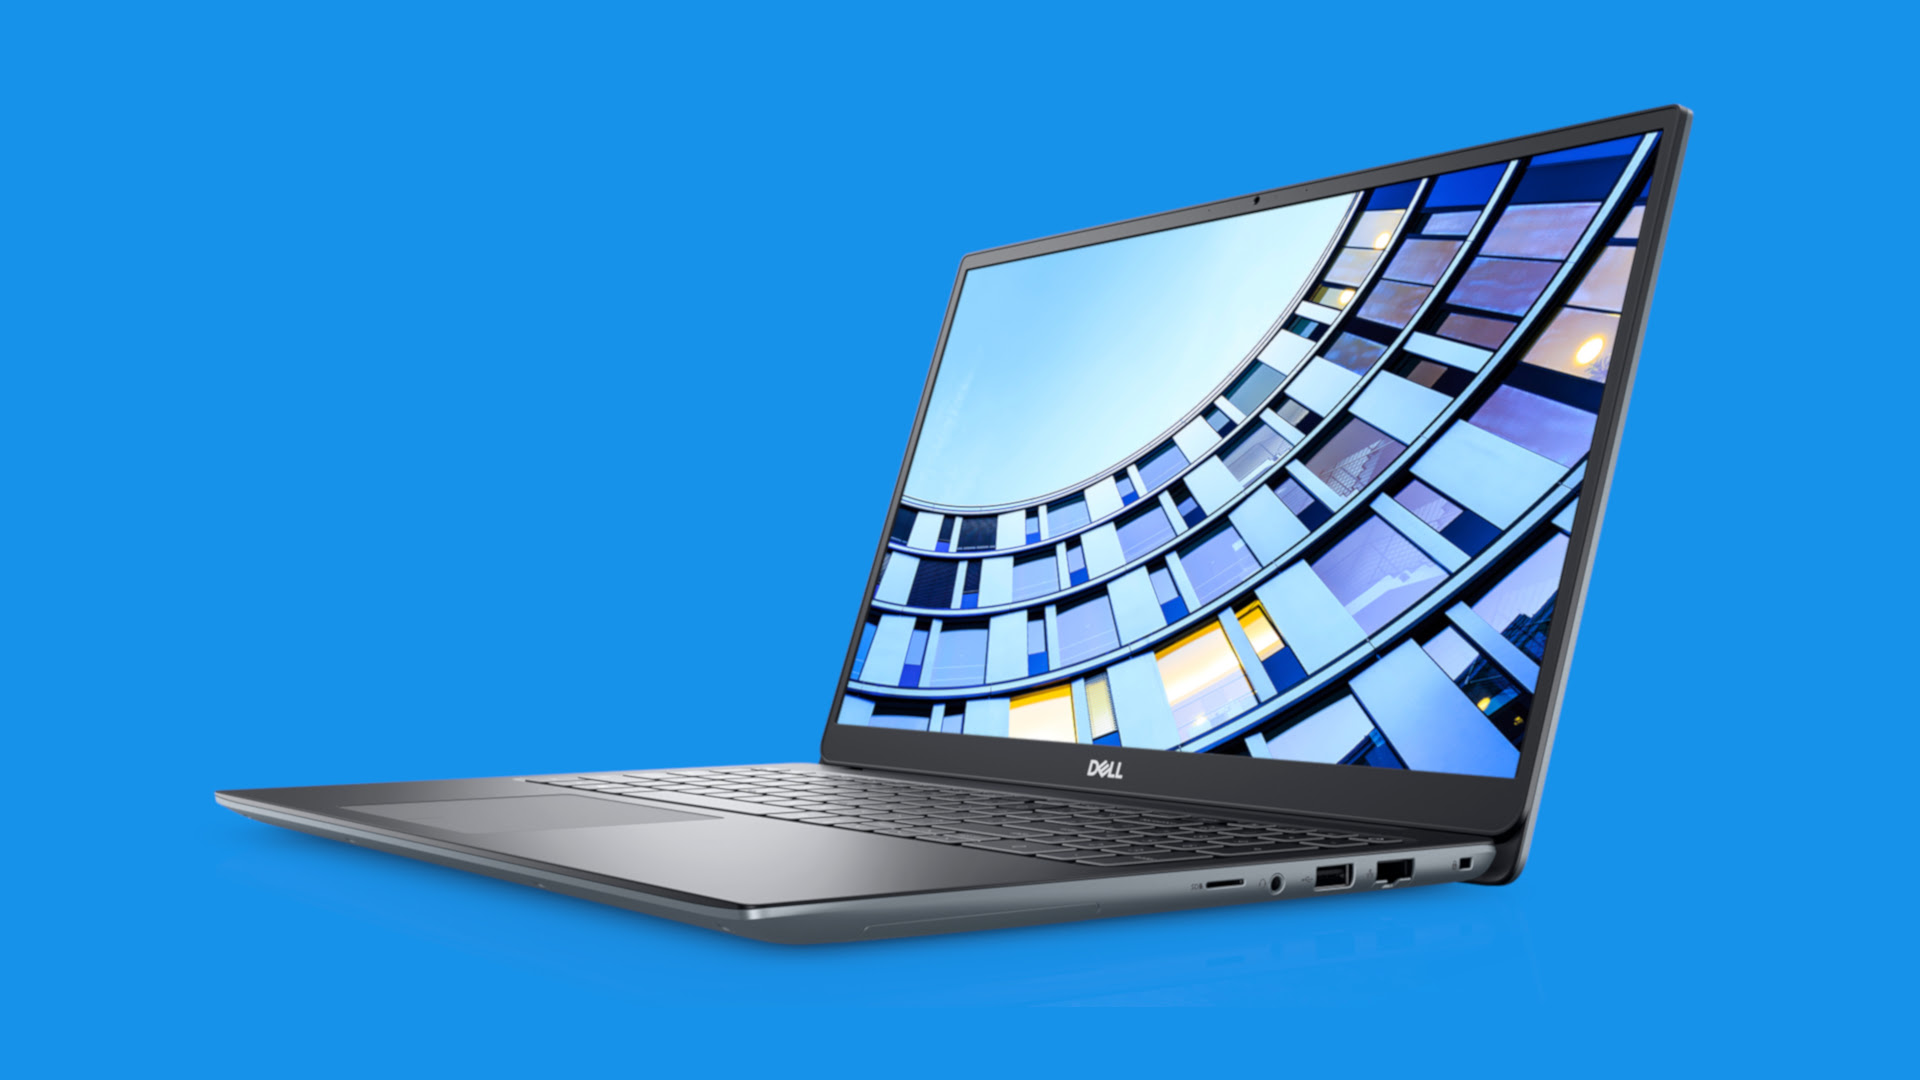 Dell announces new laptops for developers and SMBs